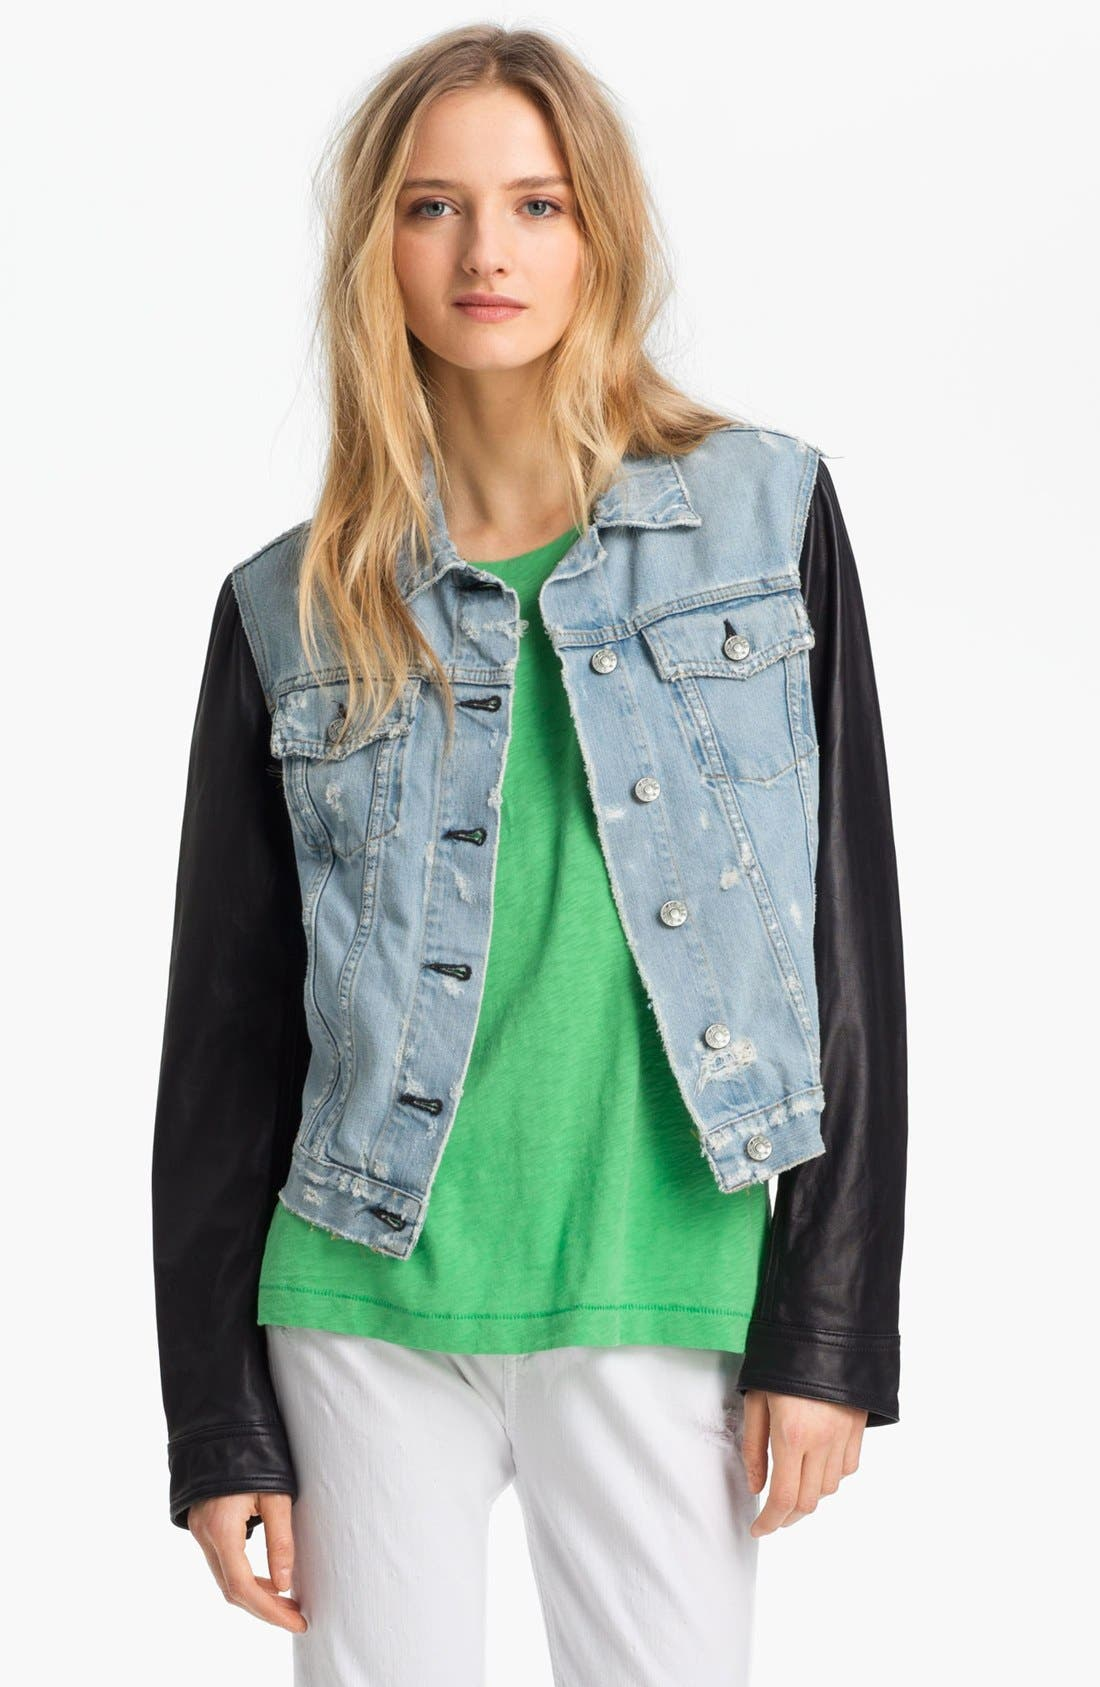 Alternate Image 1 Selected - rag & bone/JEAN Leather & Denim Jacket